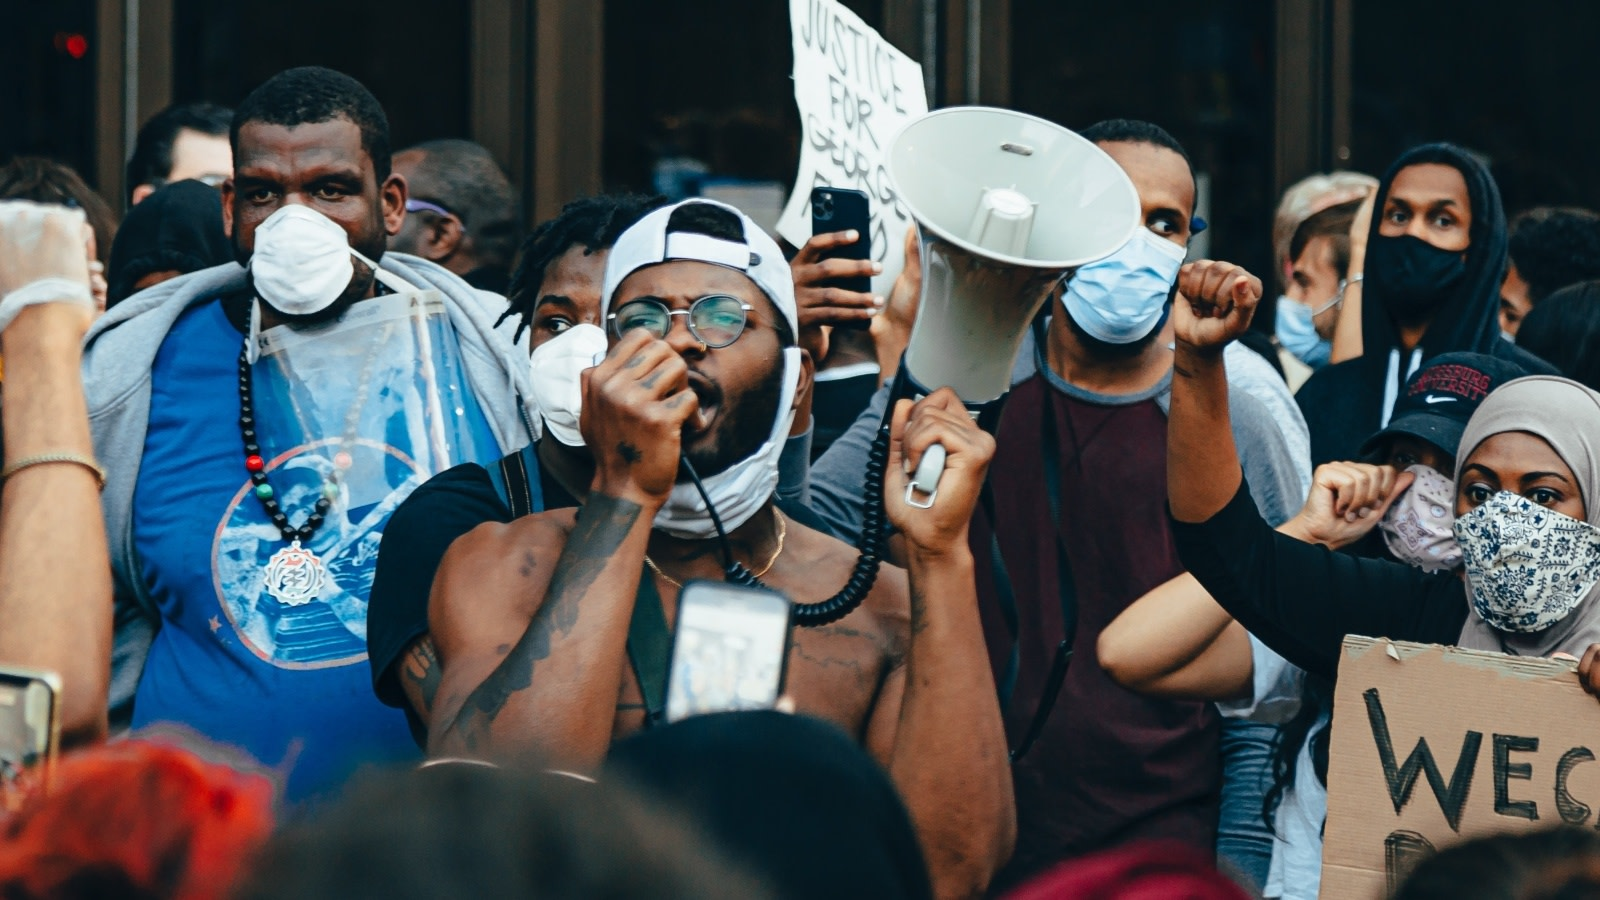 16 Wins We've Seen As Black Lives Matter Protests Continue To Apply Pressure